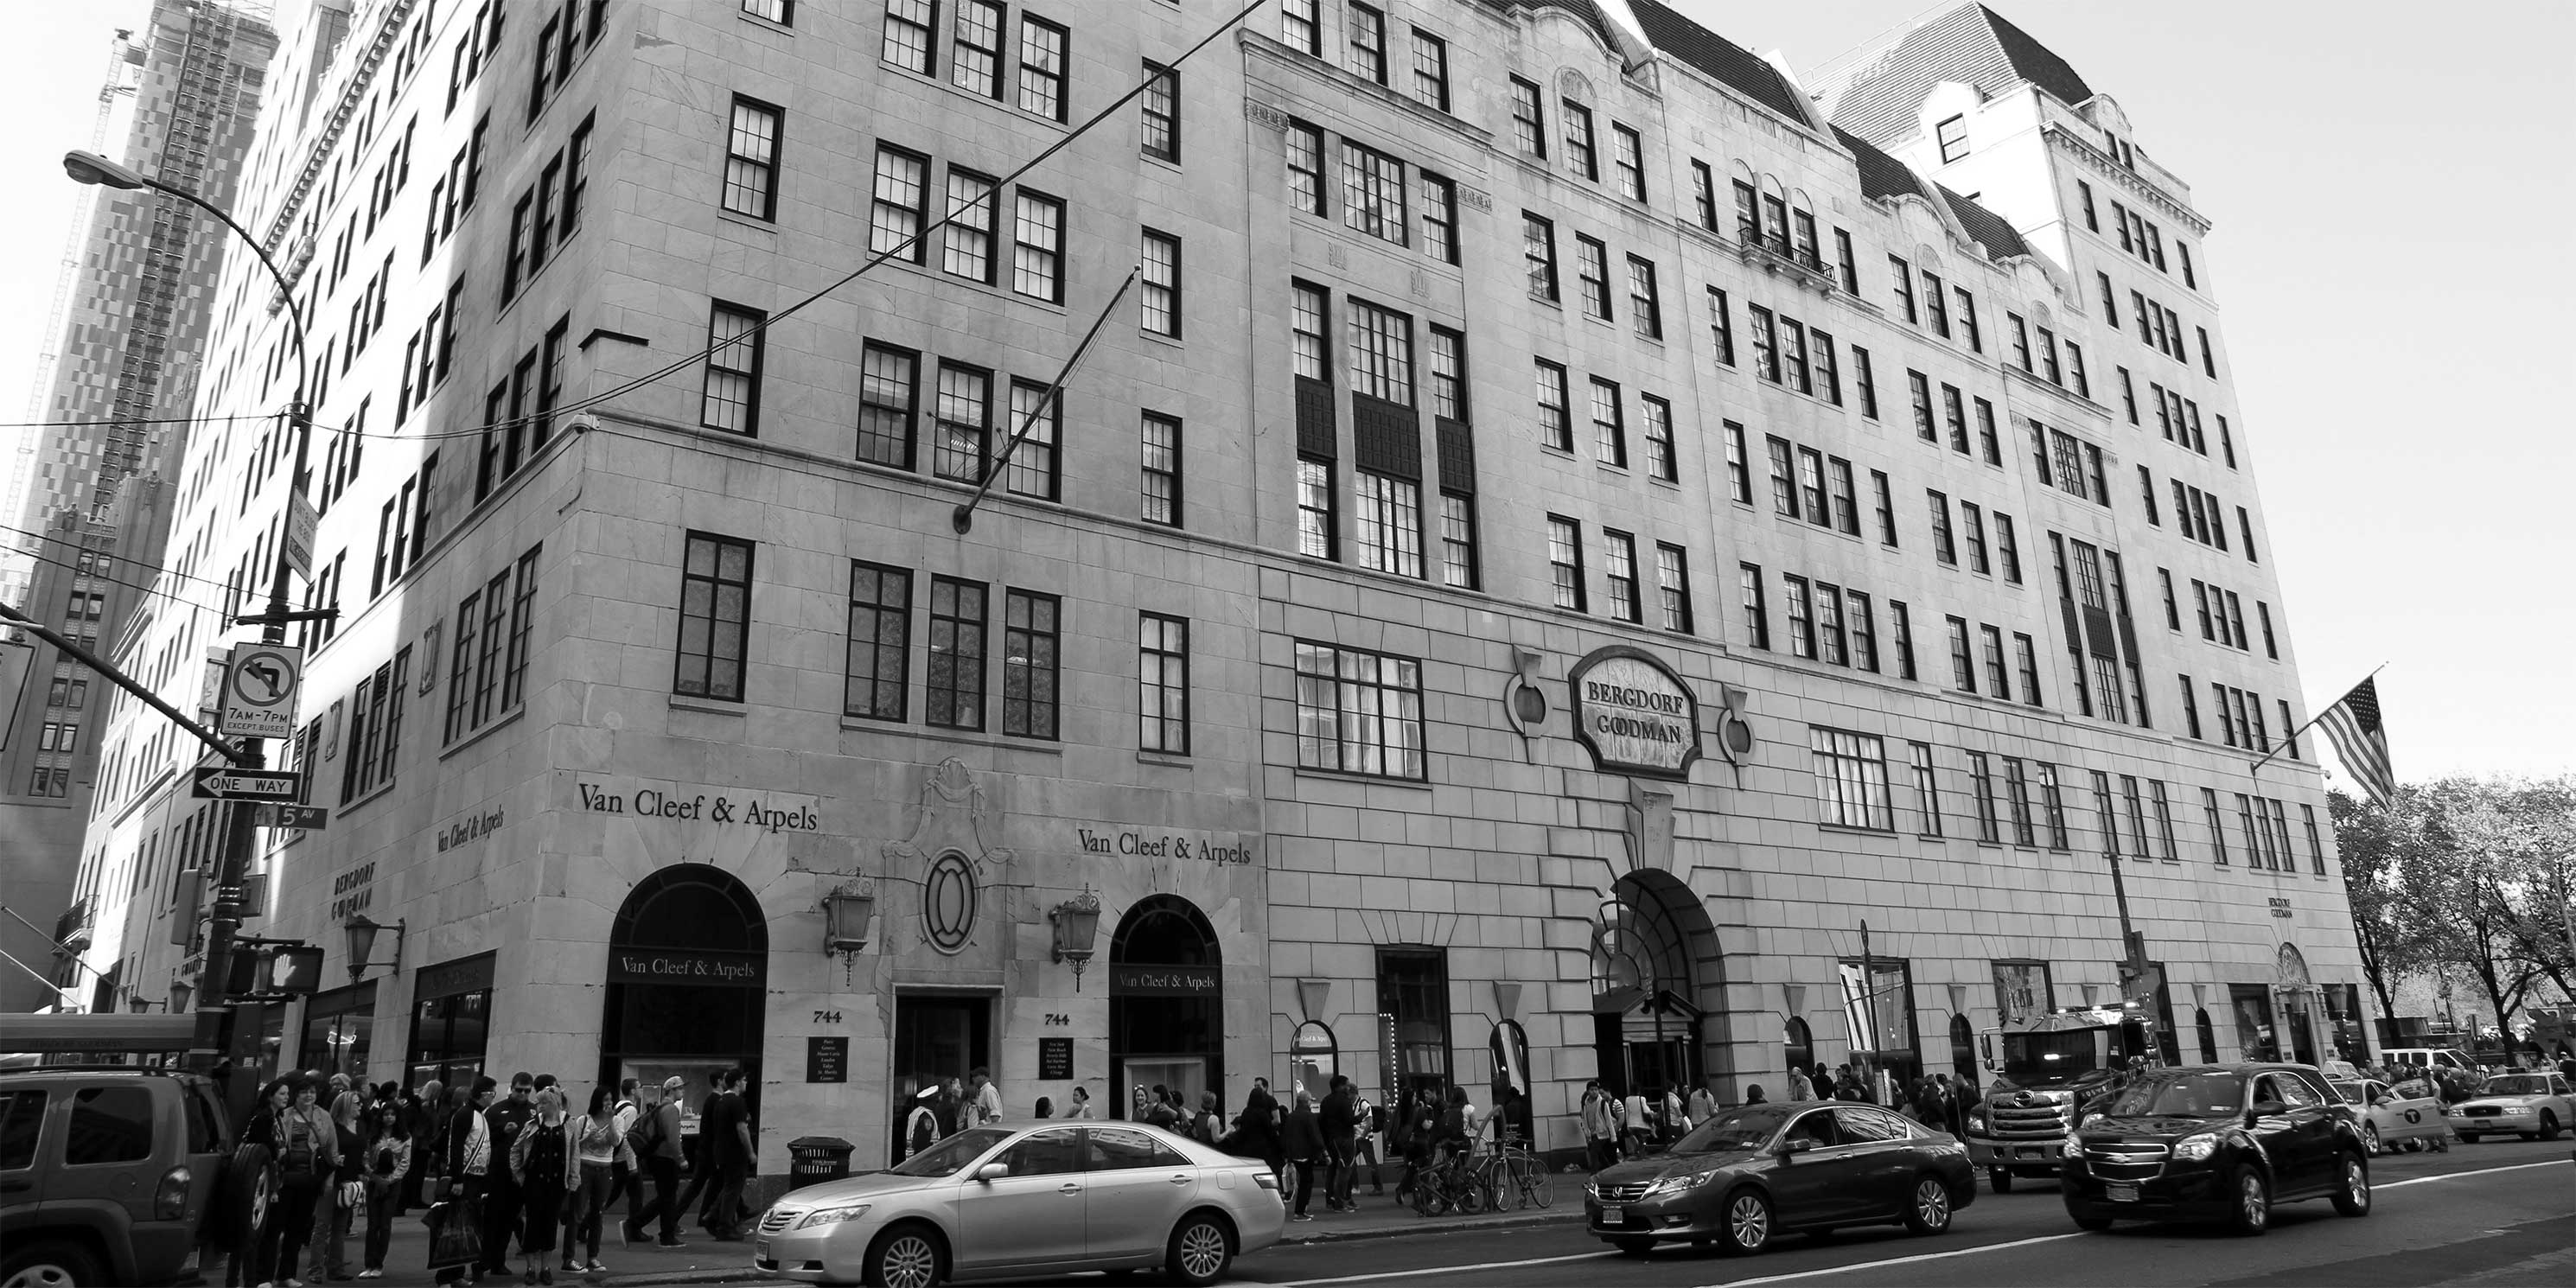 The Bergdorf Goodman store on Fifth Avenue in Manhattan. Photo: Wikimedia Commons, Ingfbruno.